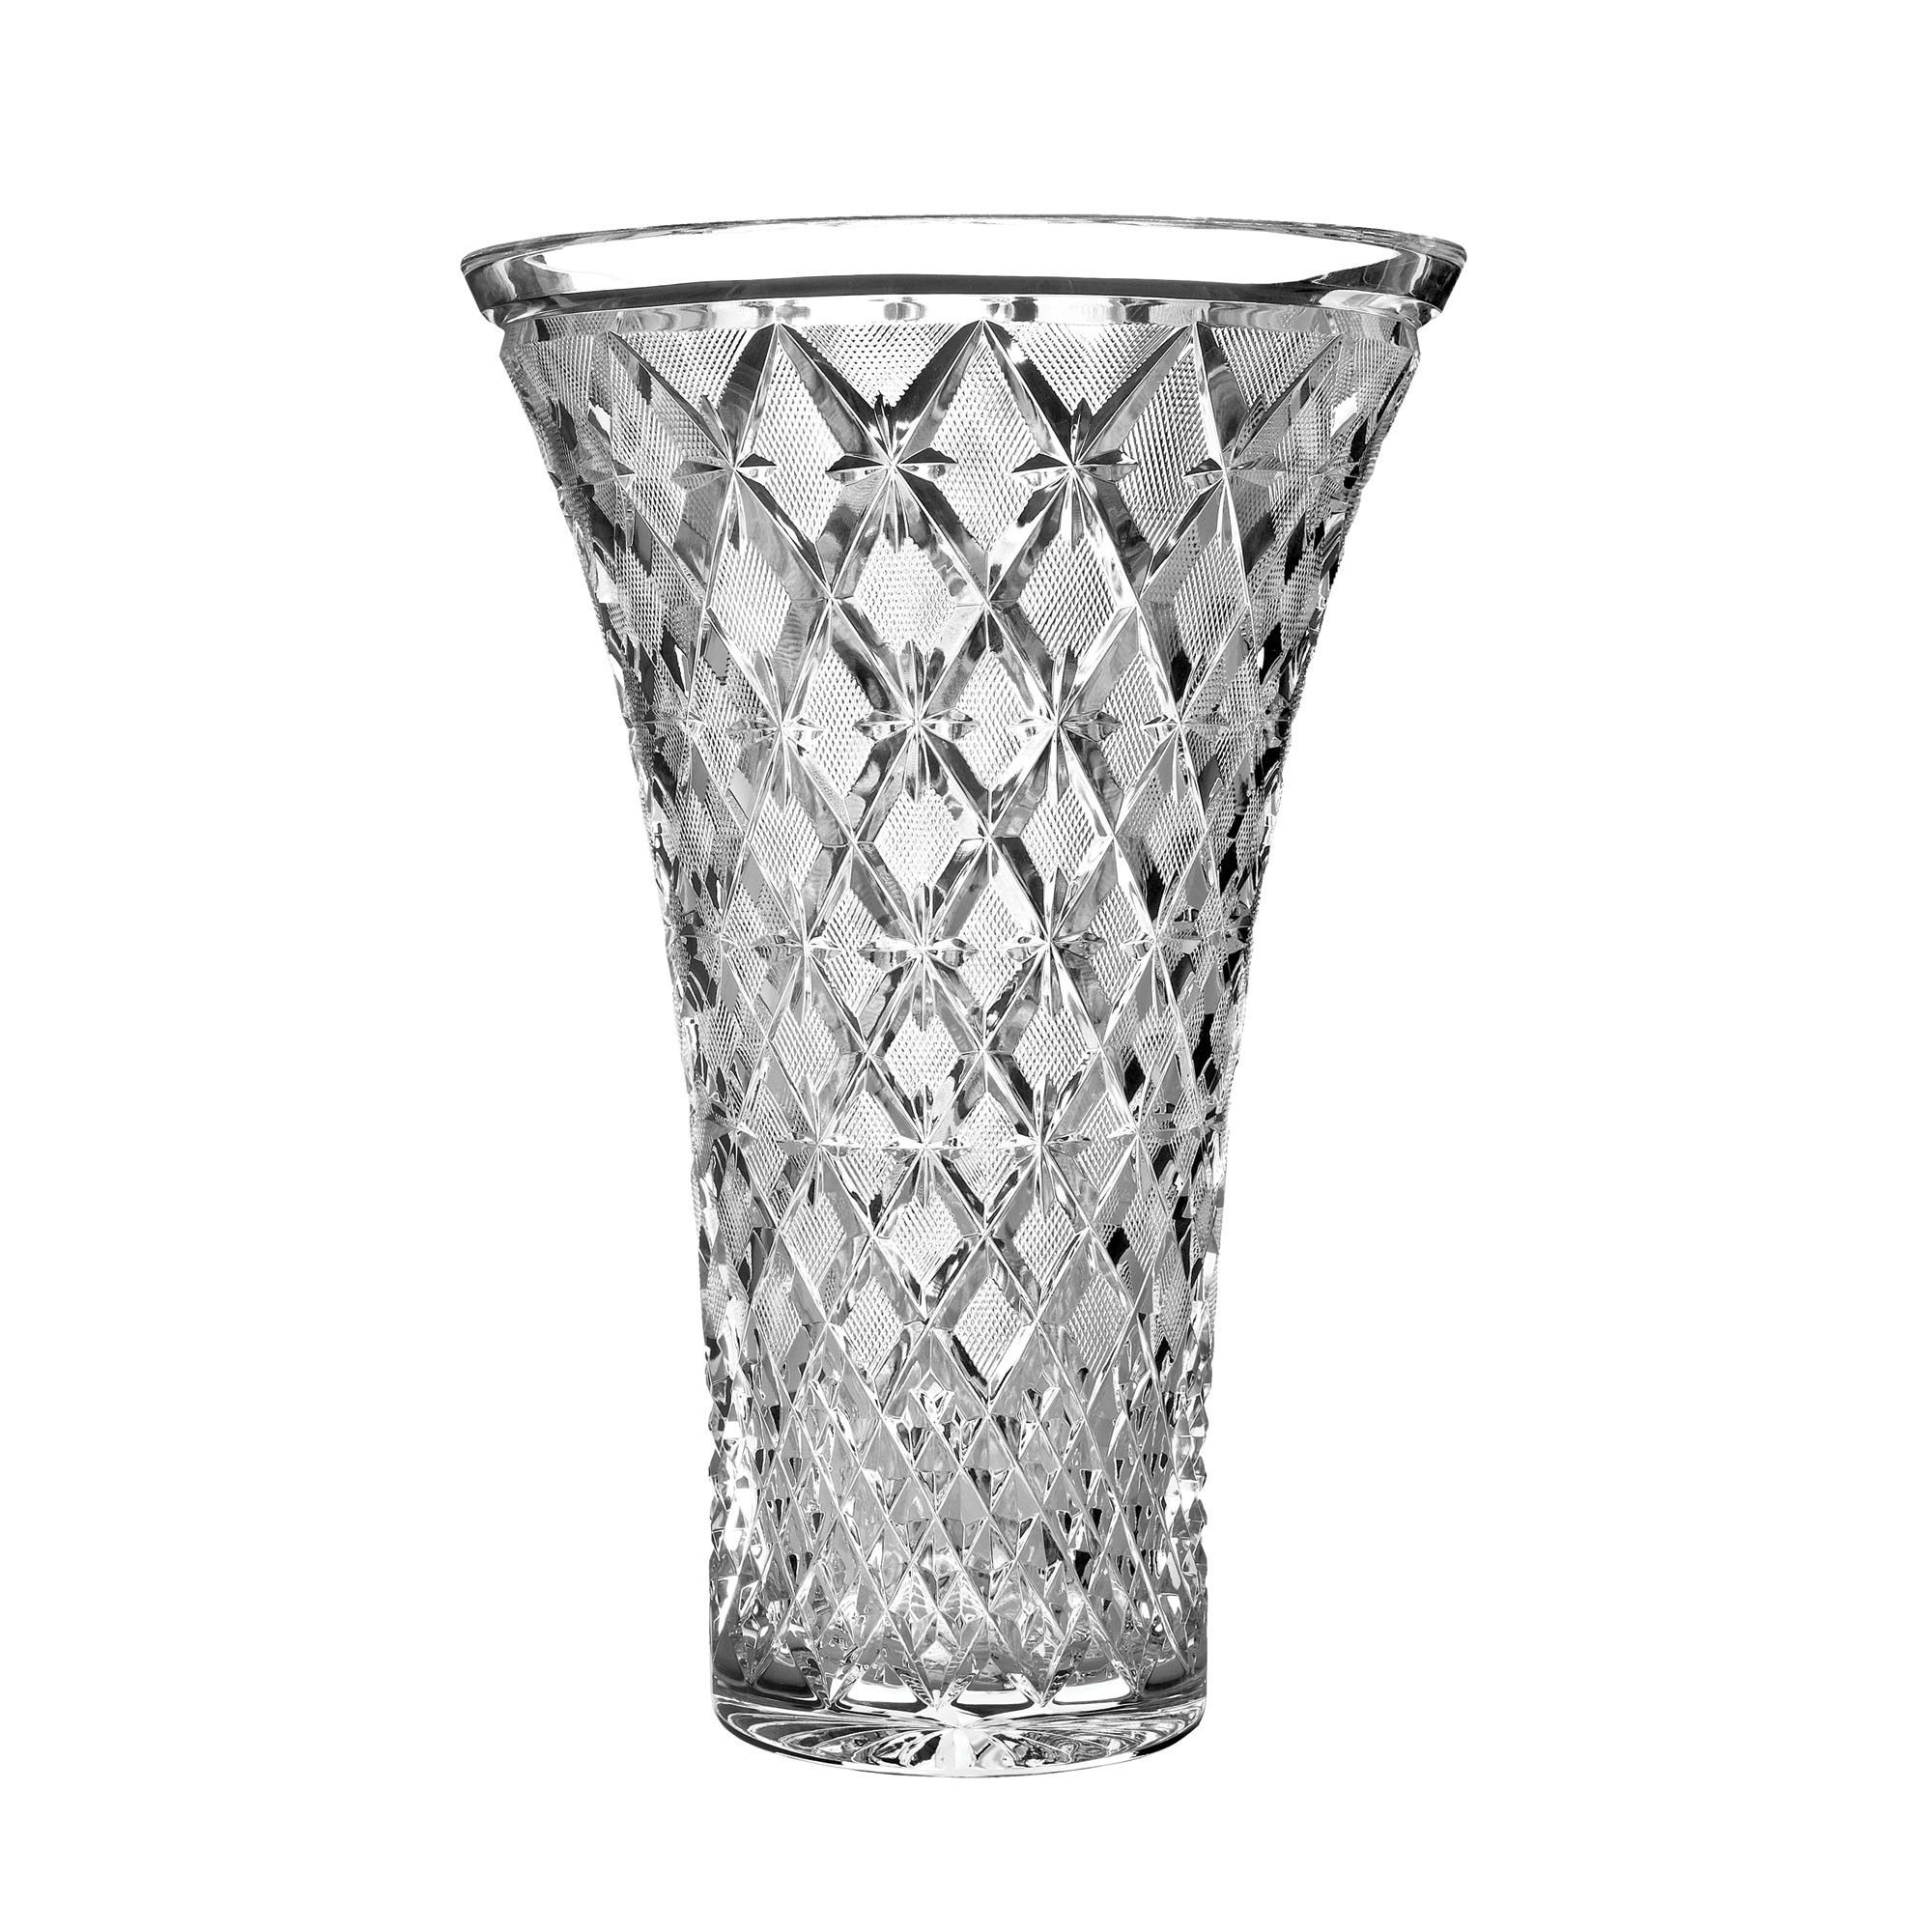 en be can small moodshop crystal holder vase this a piet as used also regenbogen pink flower candle